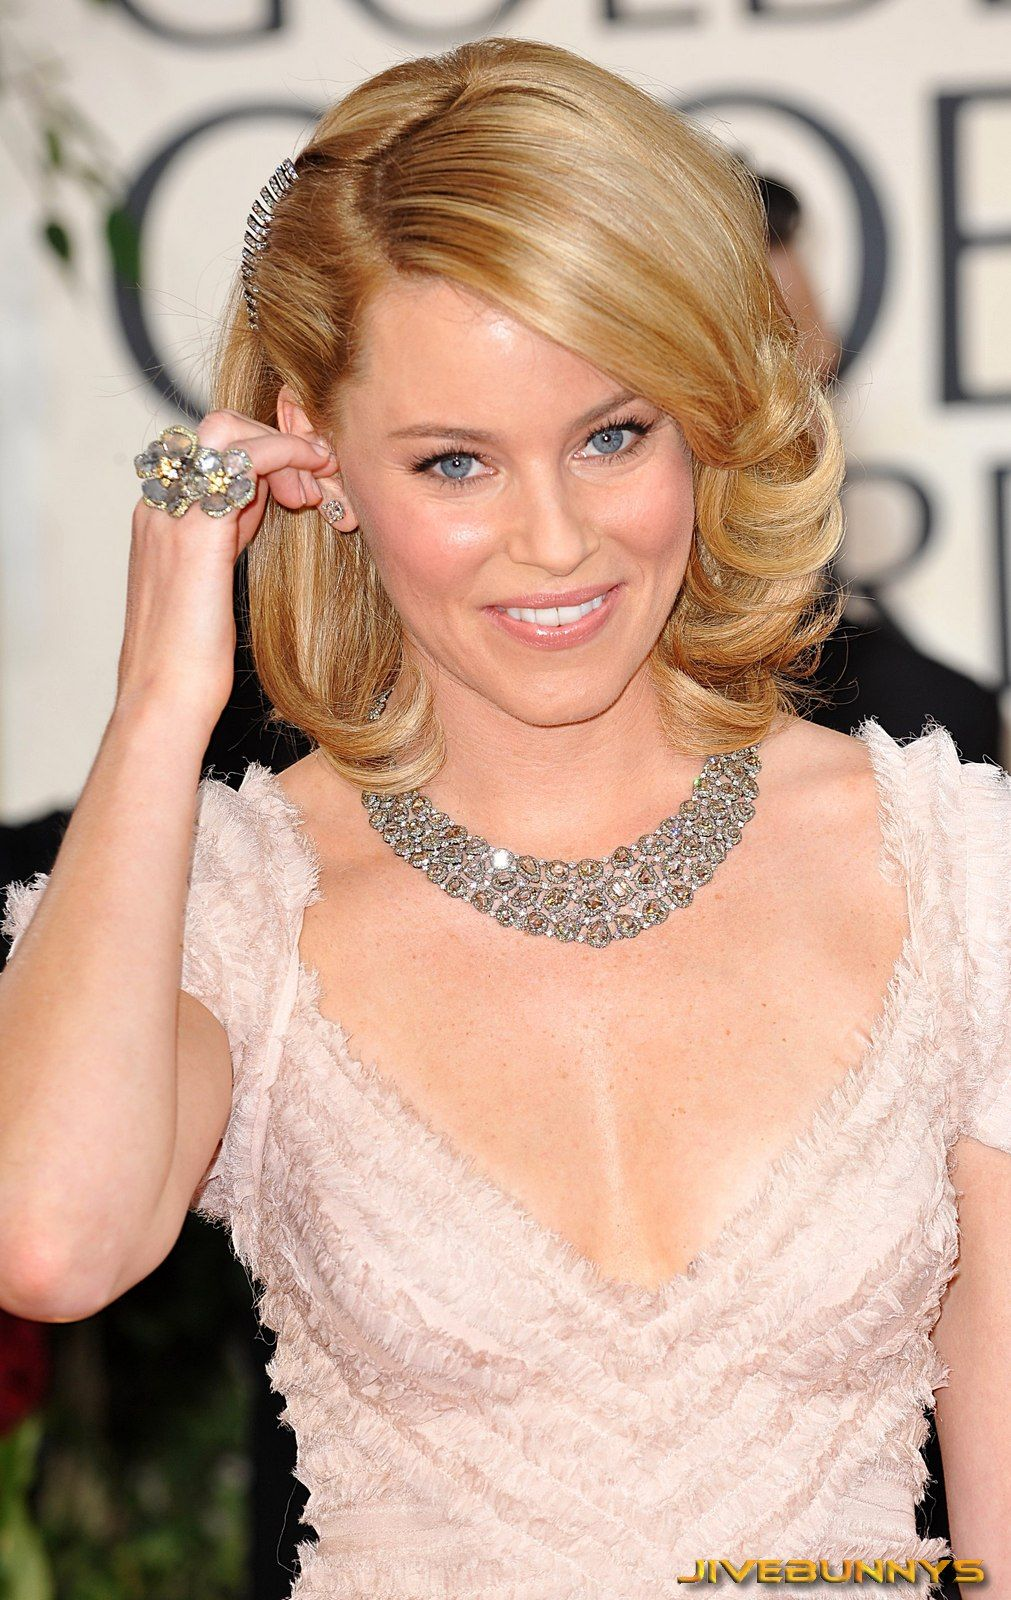 Elizabeth Banks Beautiful Yes But What Makes Her More Attractive Is Her Most Endearing And Charming Personality Also The Bes Elizabeth Banks Celebrities Hair